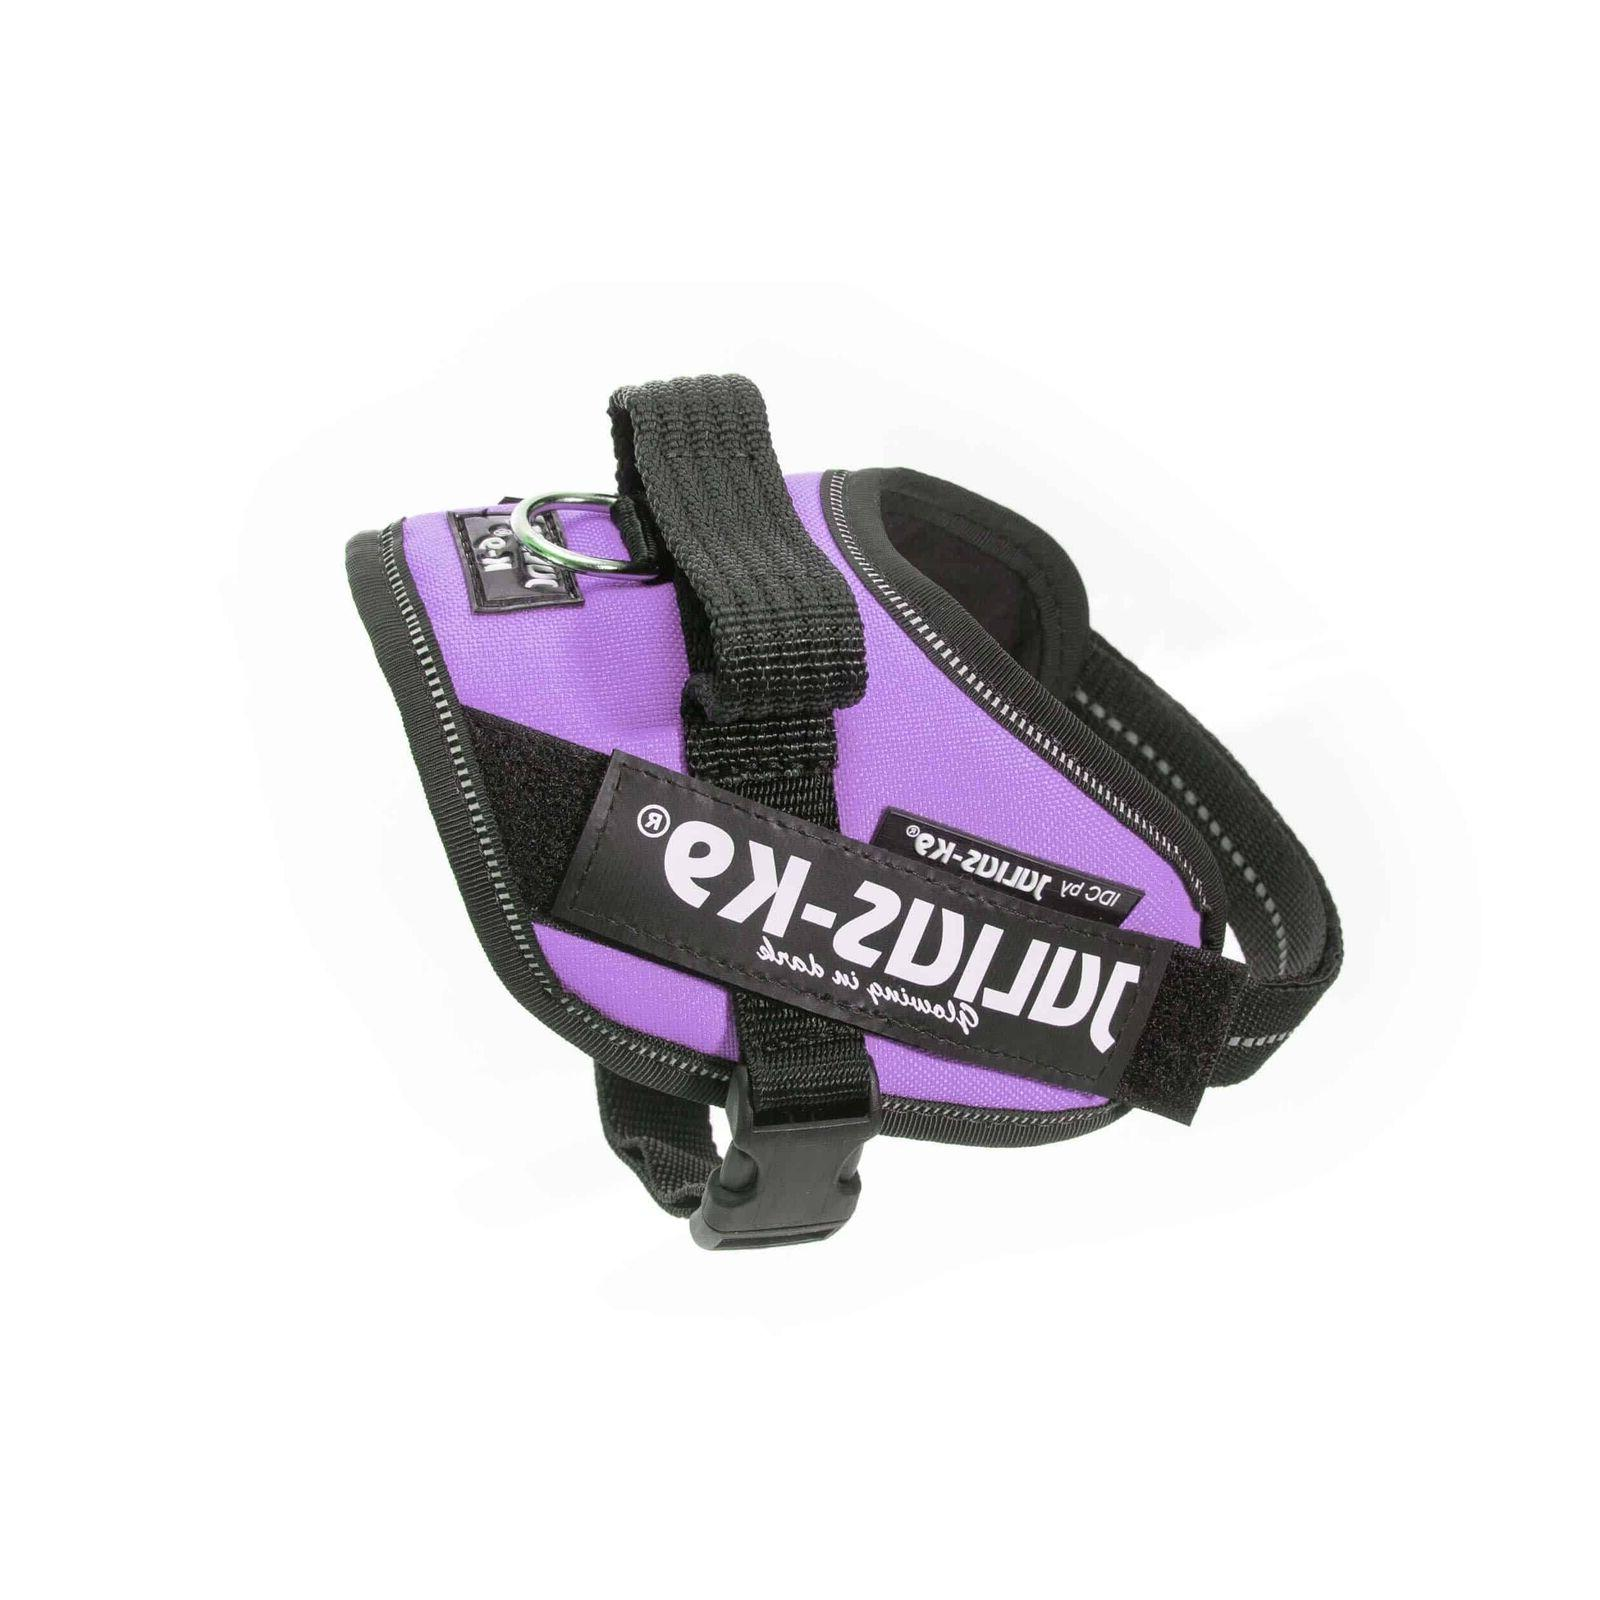 Puppy Harness Adjustable Reflective